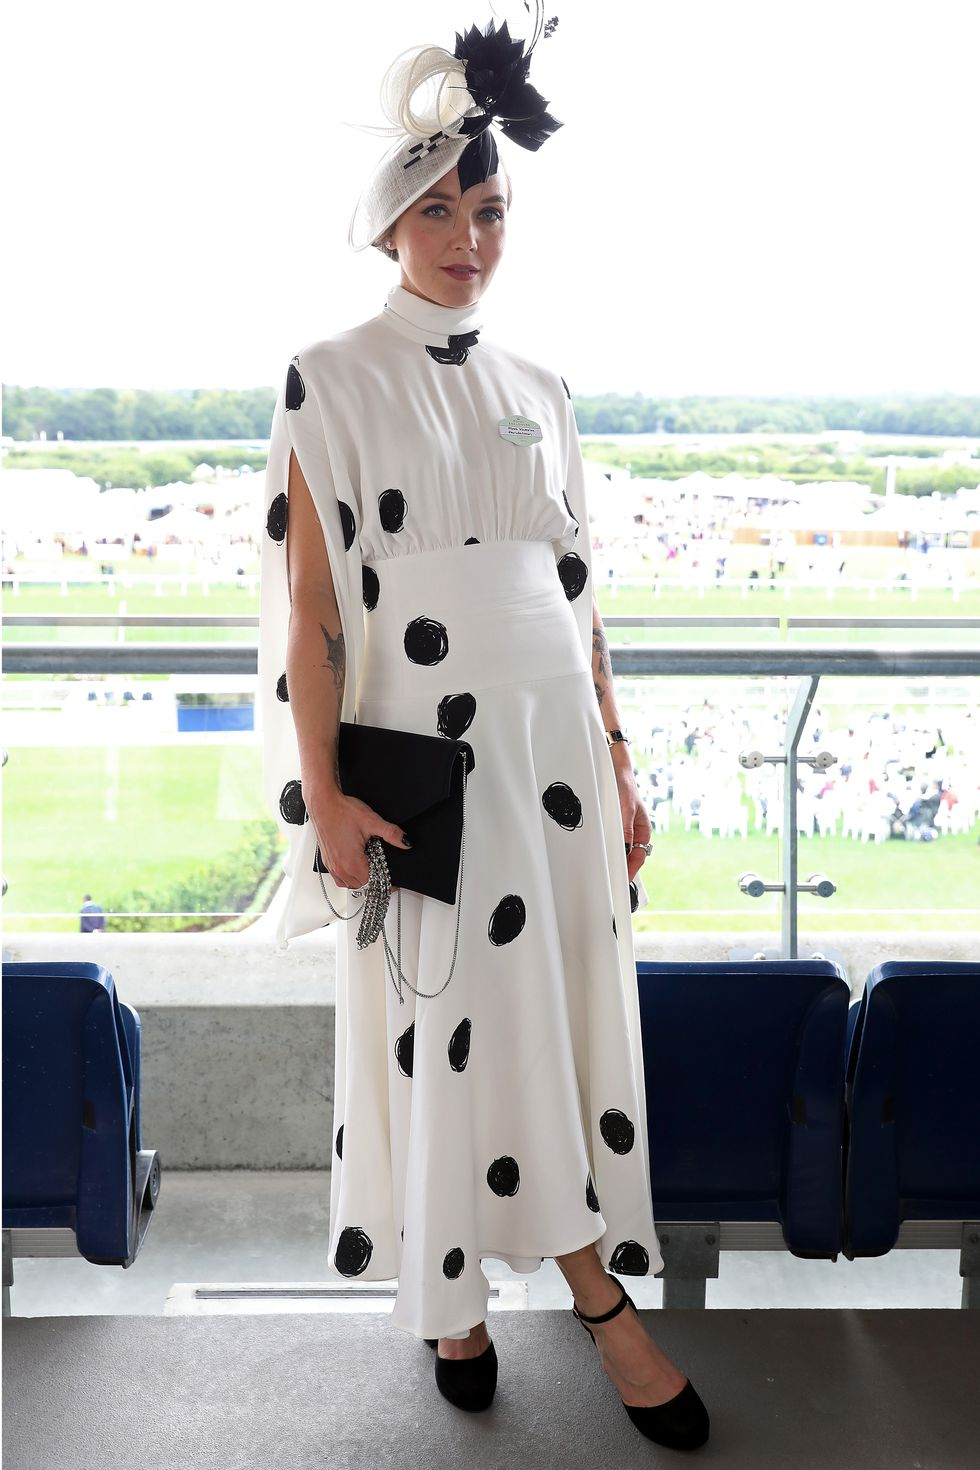 victoria-pendleton-on-day-3-of-royal-ascot-at-ascot-news-photo-1157141968-1561041082.jpg